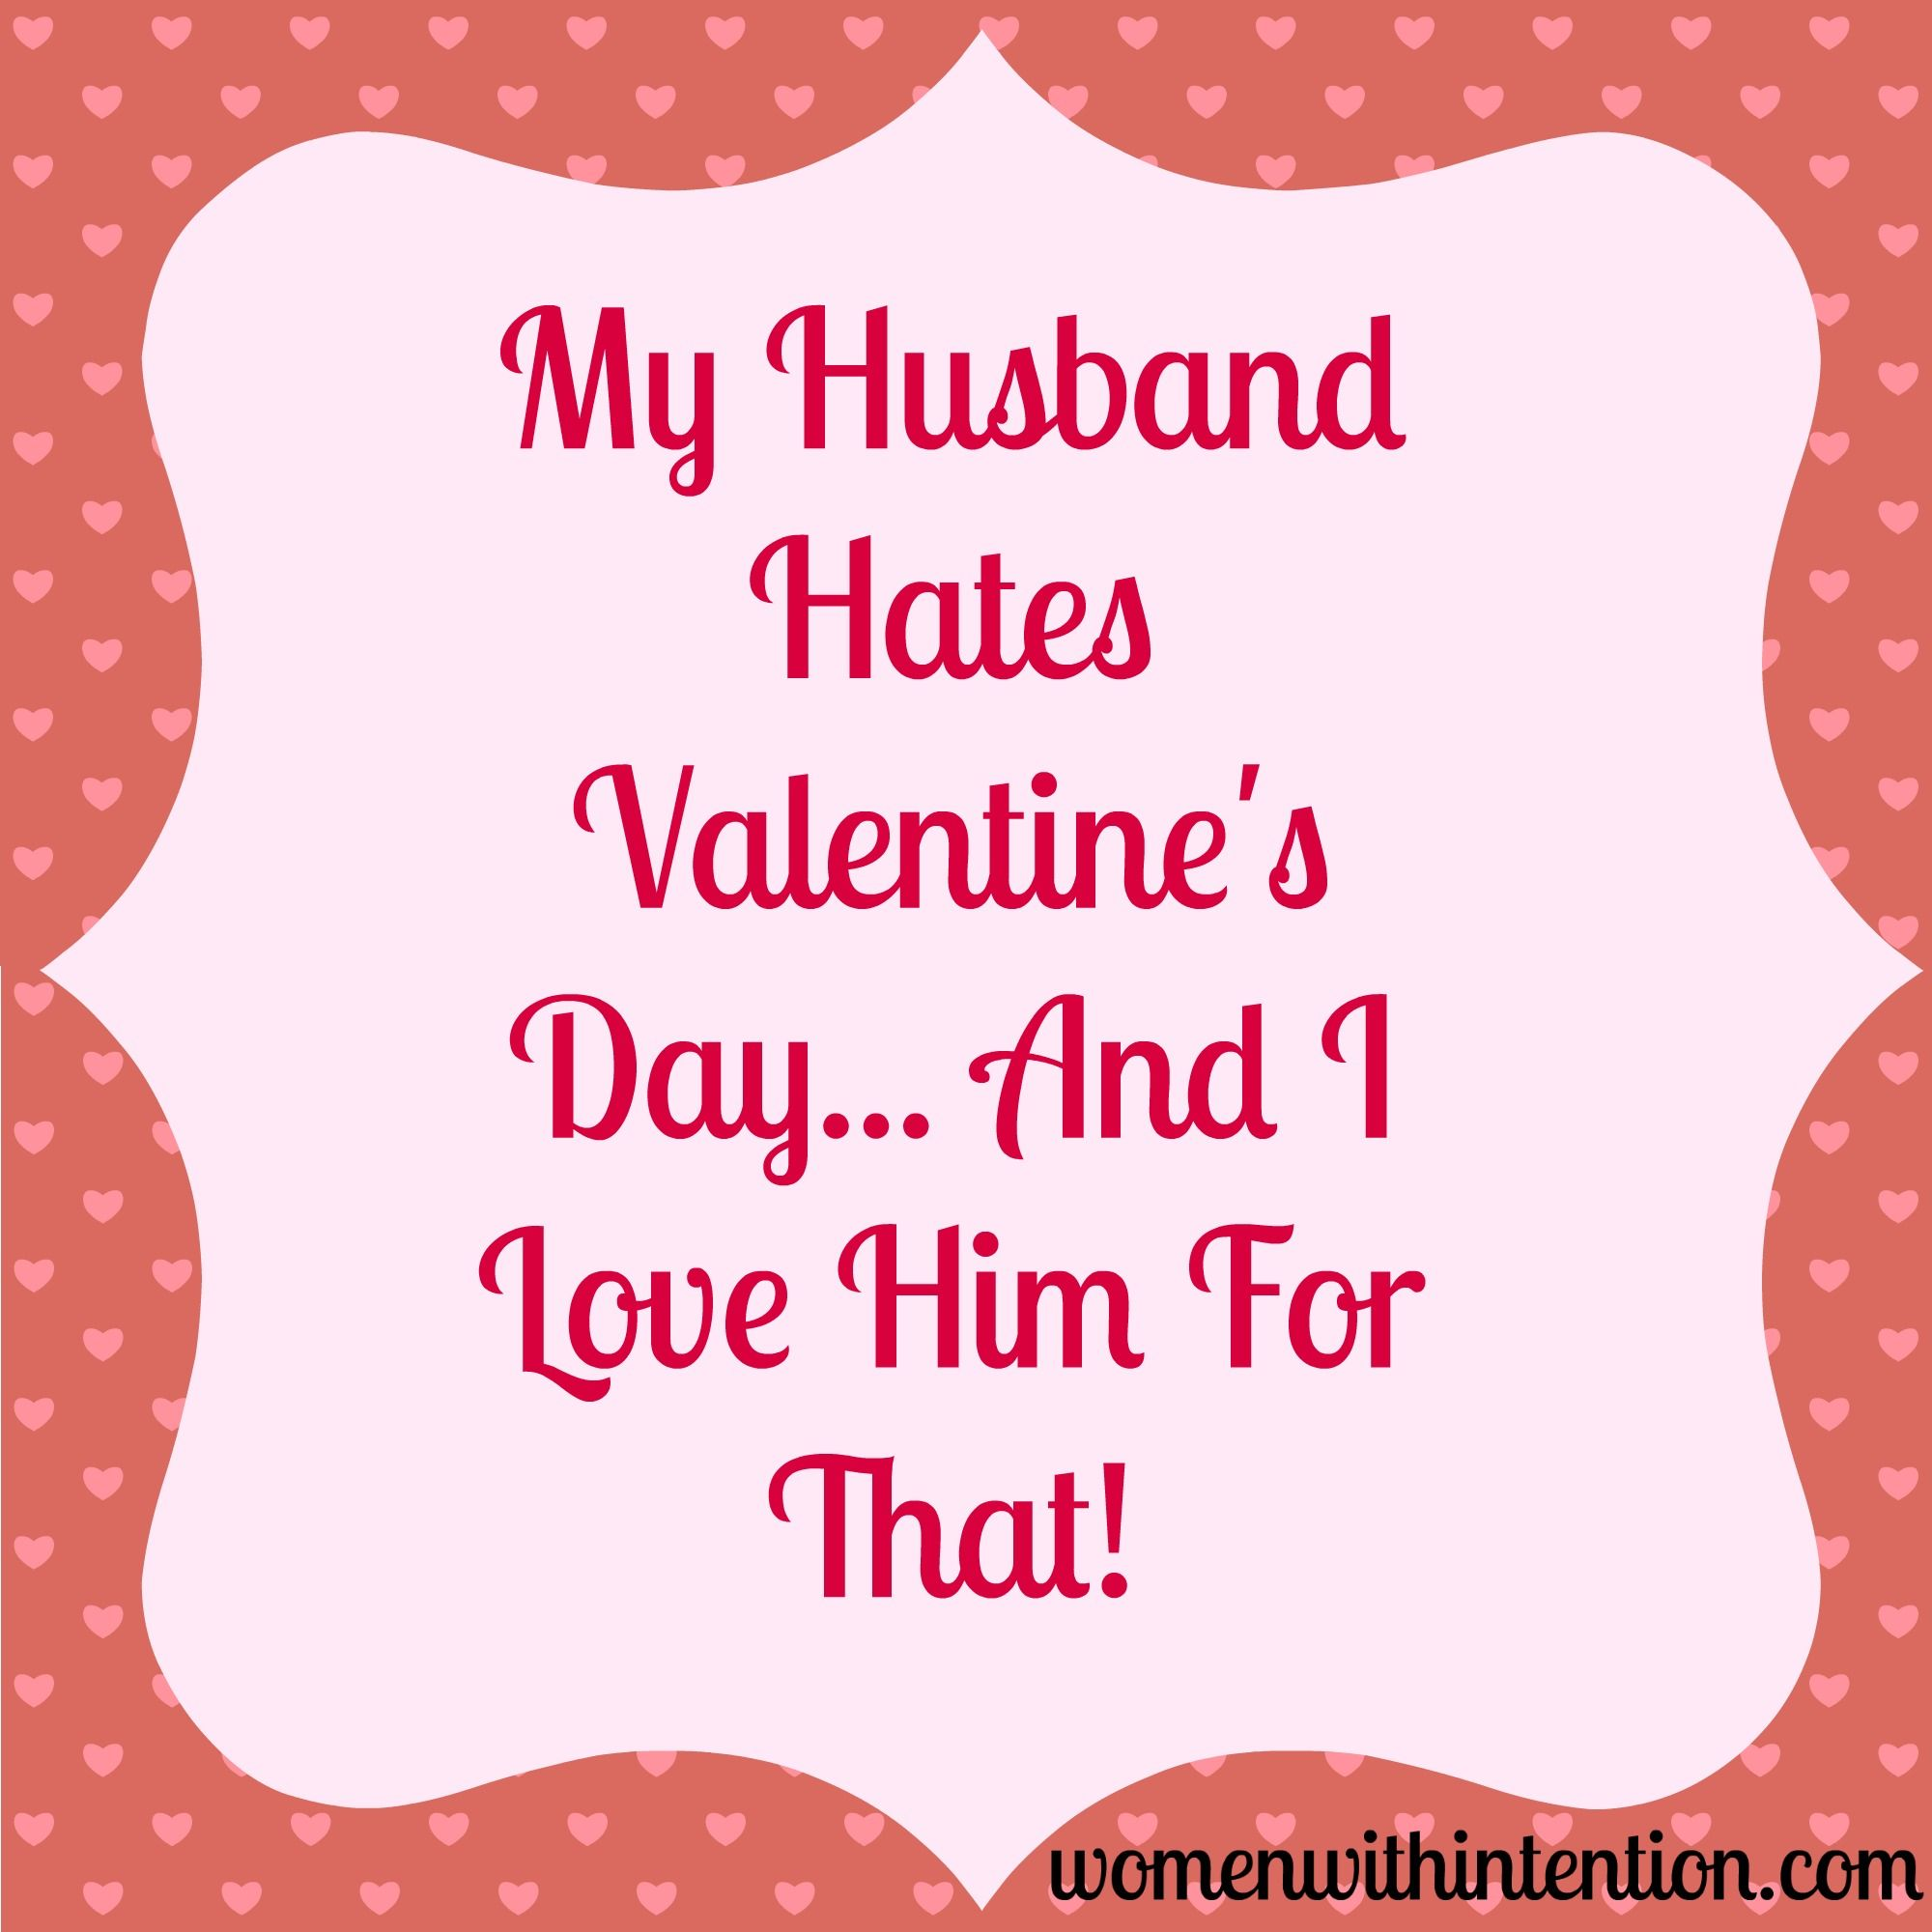 Afunnyimages provides High Definition Valentines Day Quotes Images – Free Valentine Cards for Husband